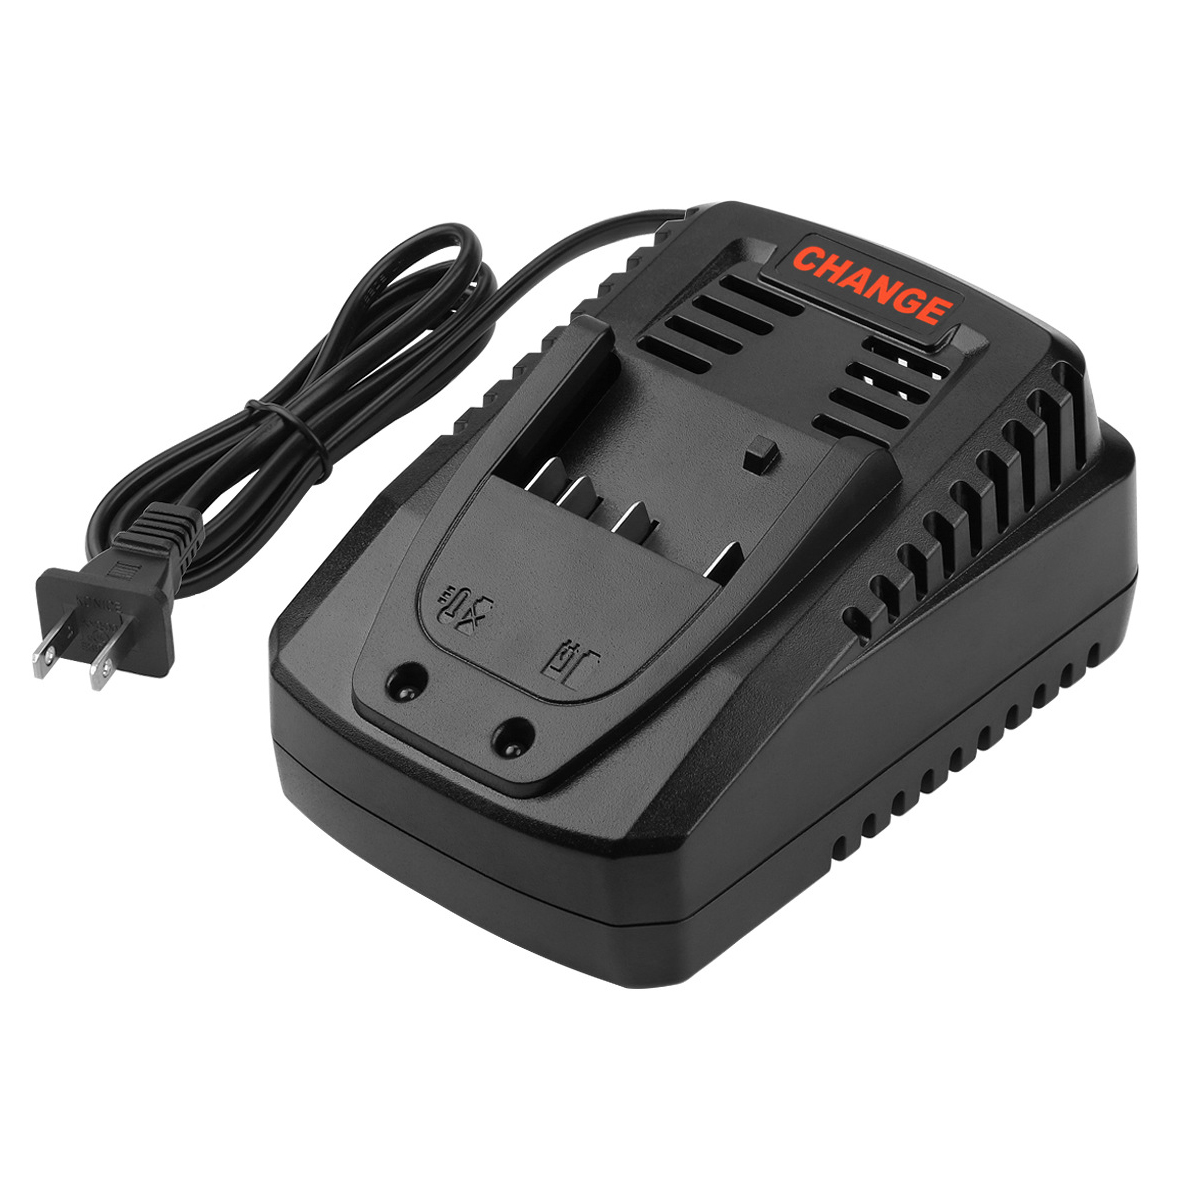 Charger 100-260V For Bosch 14.4V, 18V Power Tool Charger 50/60HZ